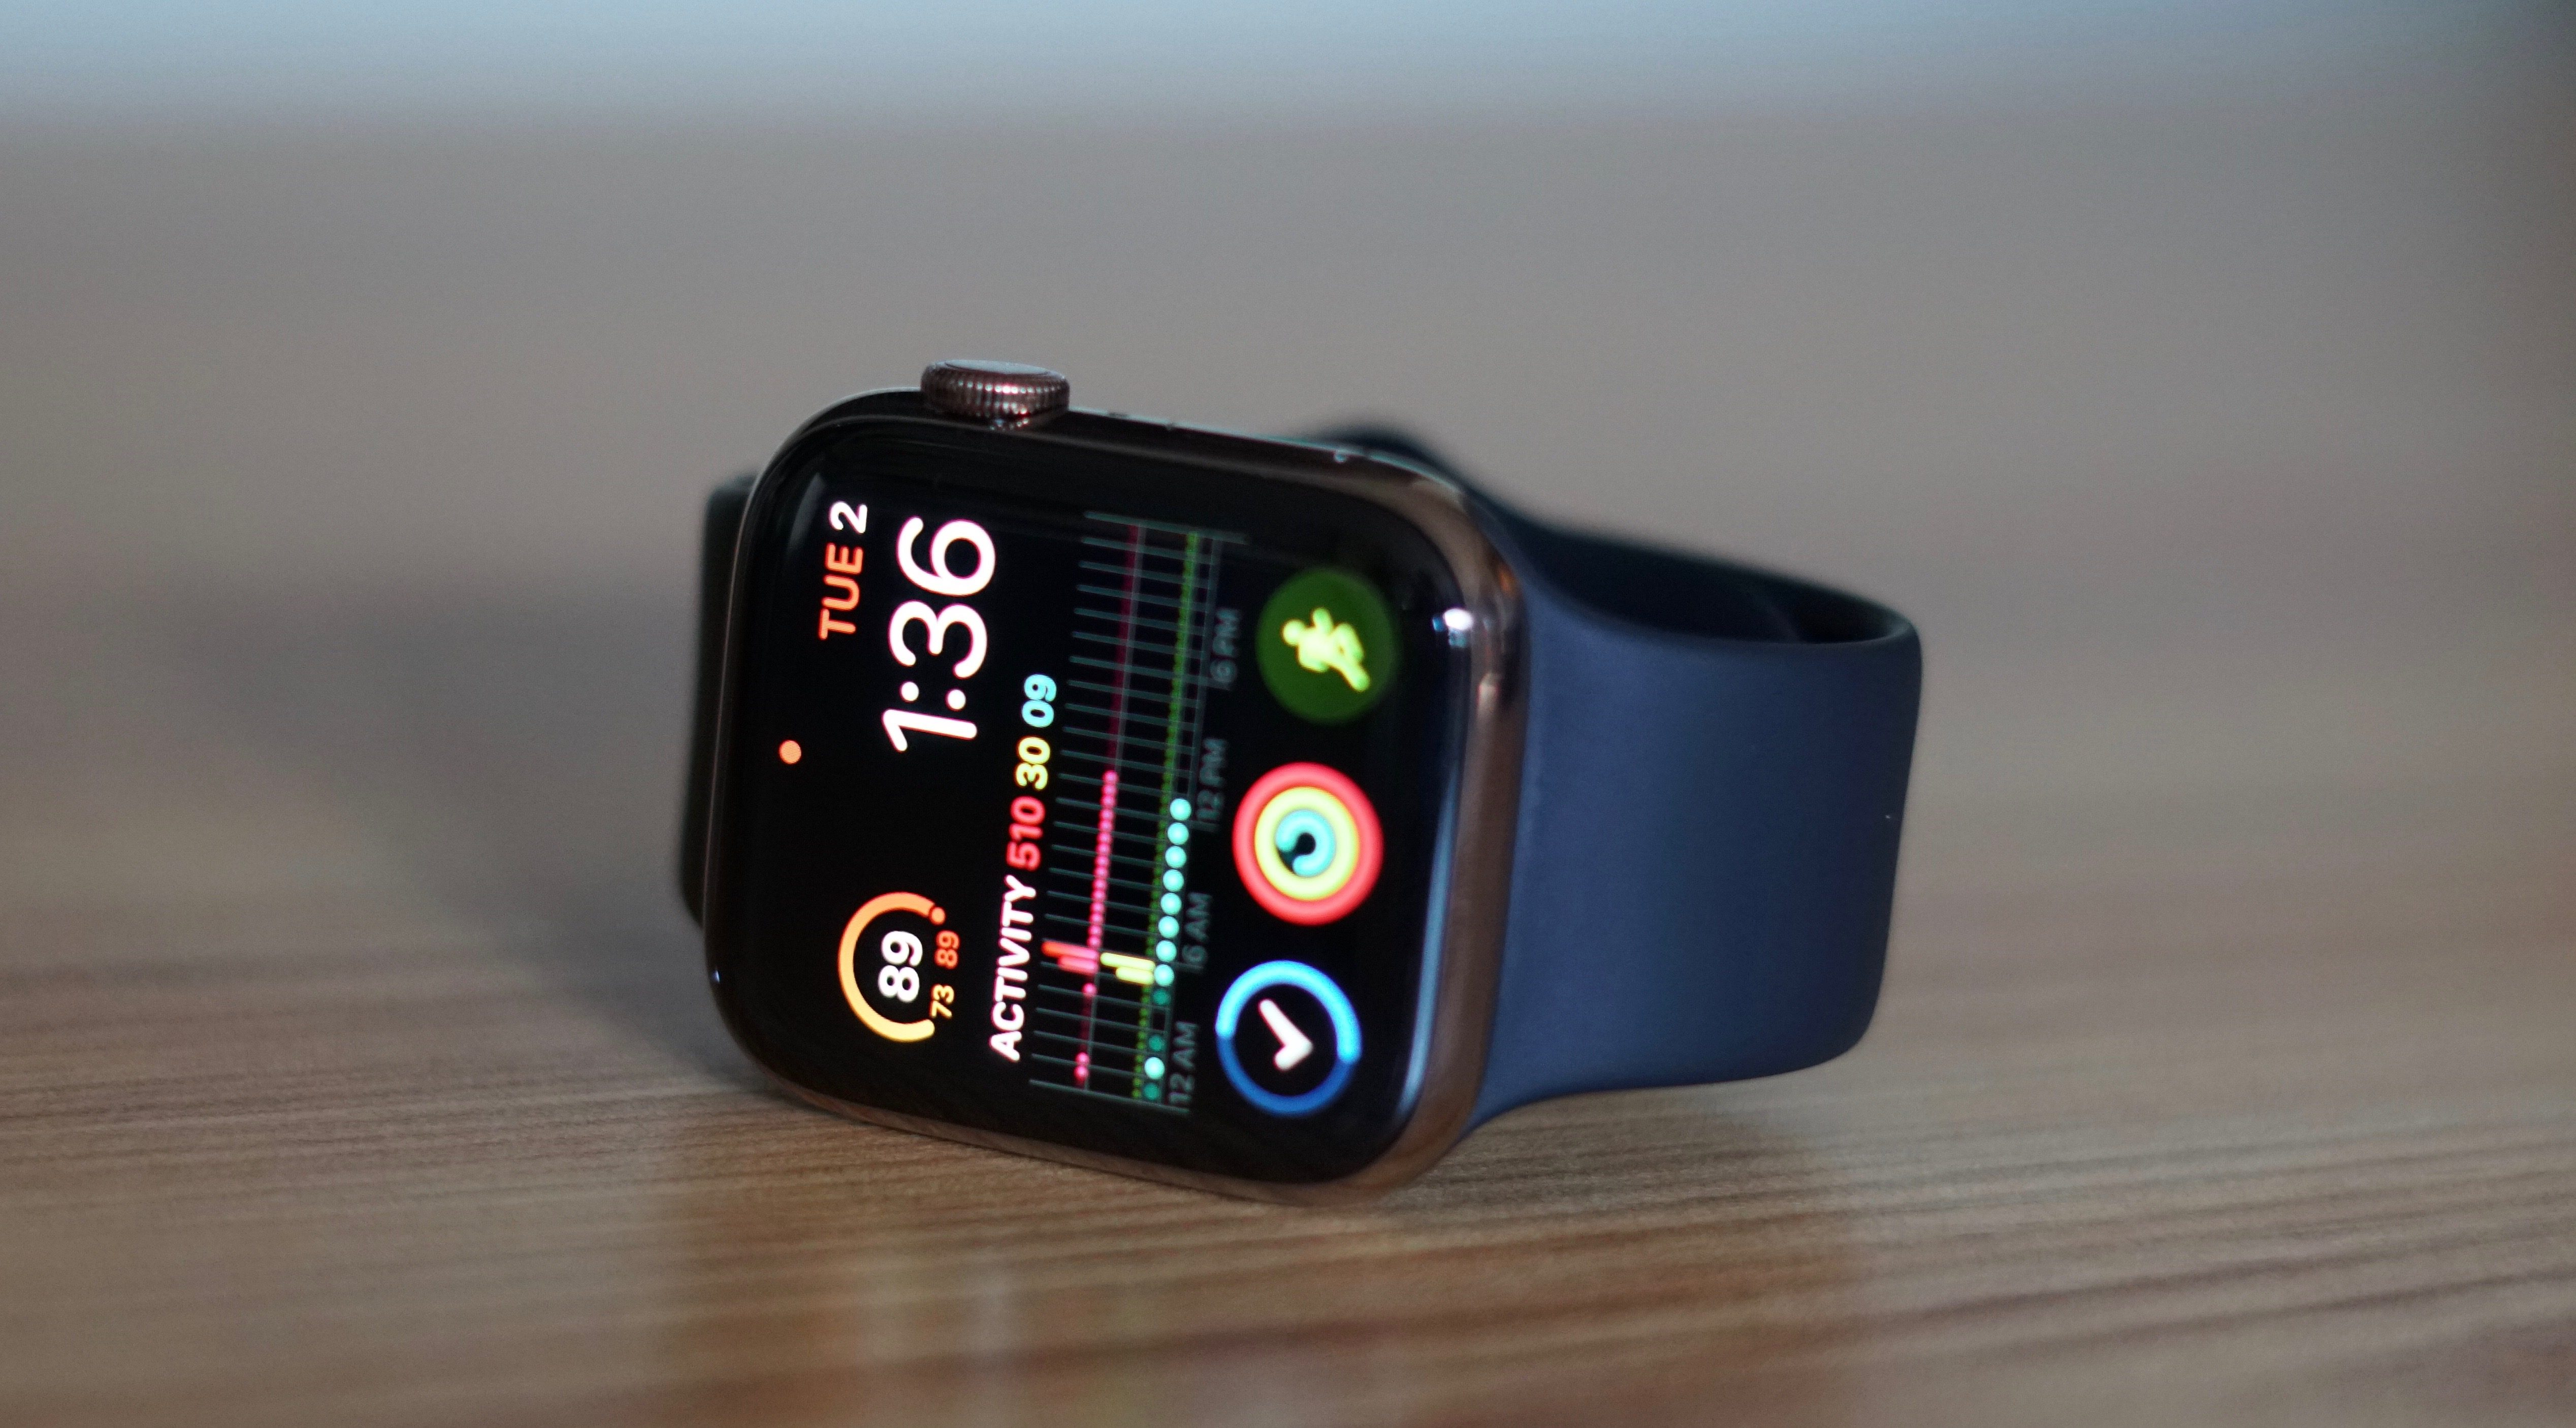 Will apple watch 4 work with iphone 5s